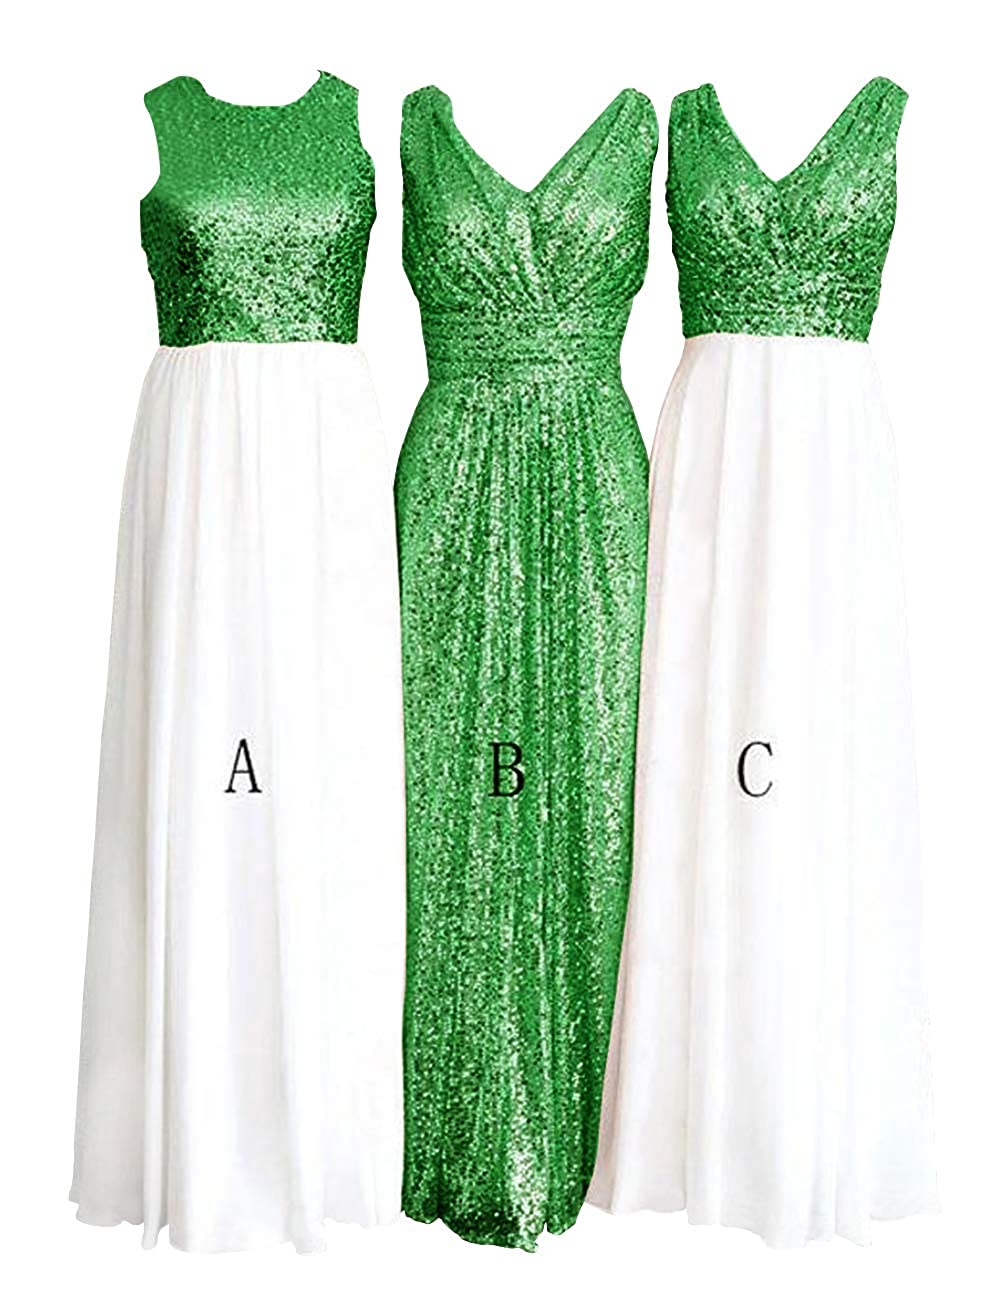 Awhite and Green H.S.D Women's pink gold Sequins Paillettes Long Bridesmaid Party Prom Dress